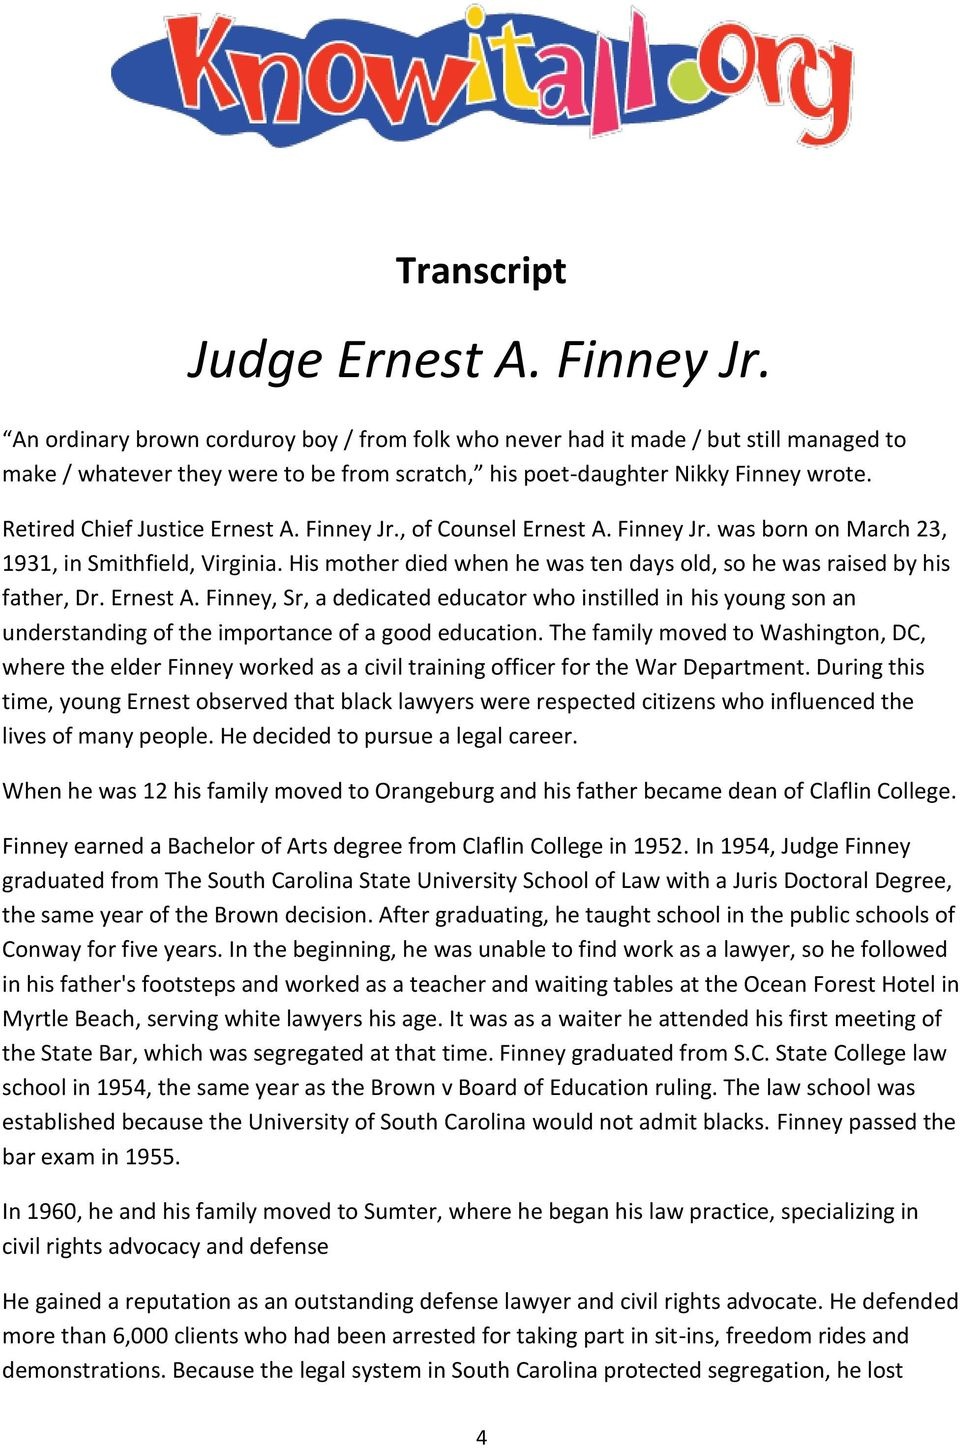 Retired Chief Justice Ernest A. Finney Jr., of Counsel Ernest A. Finney Jr. was born on March 23, 1931, in Smithfield, Virginia.